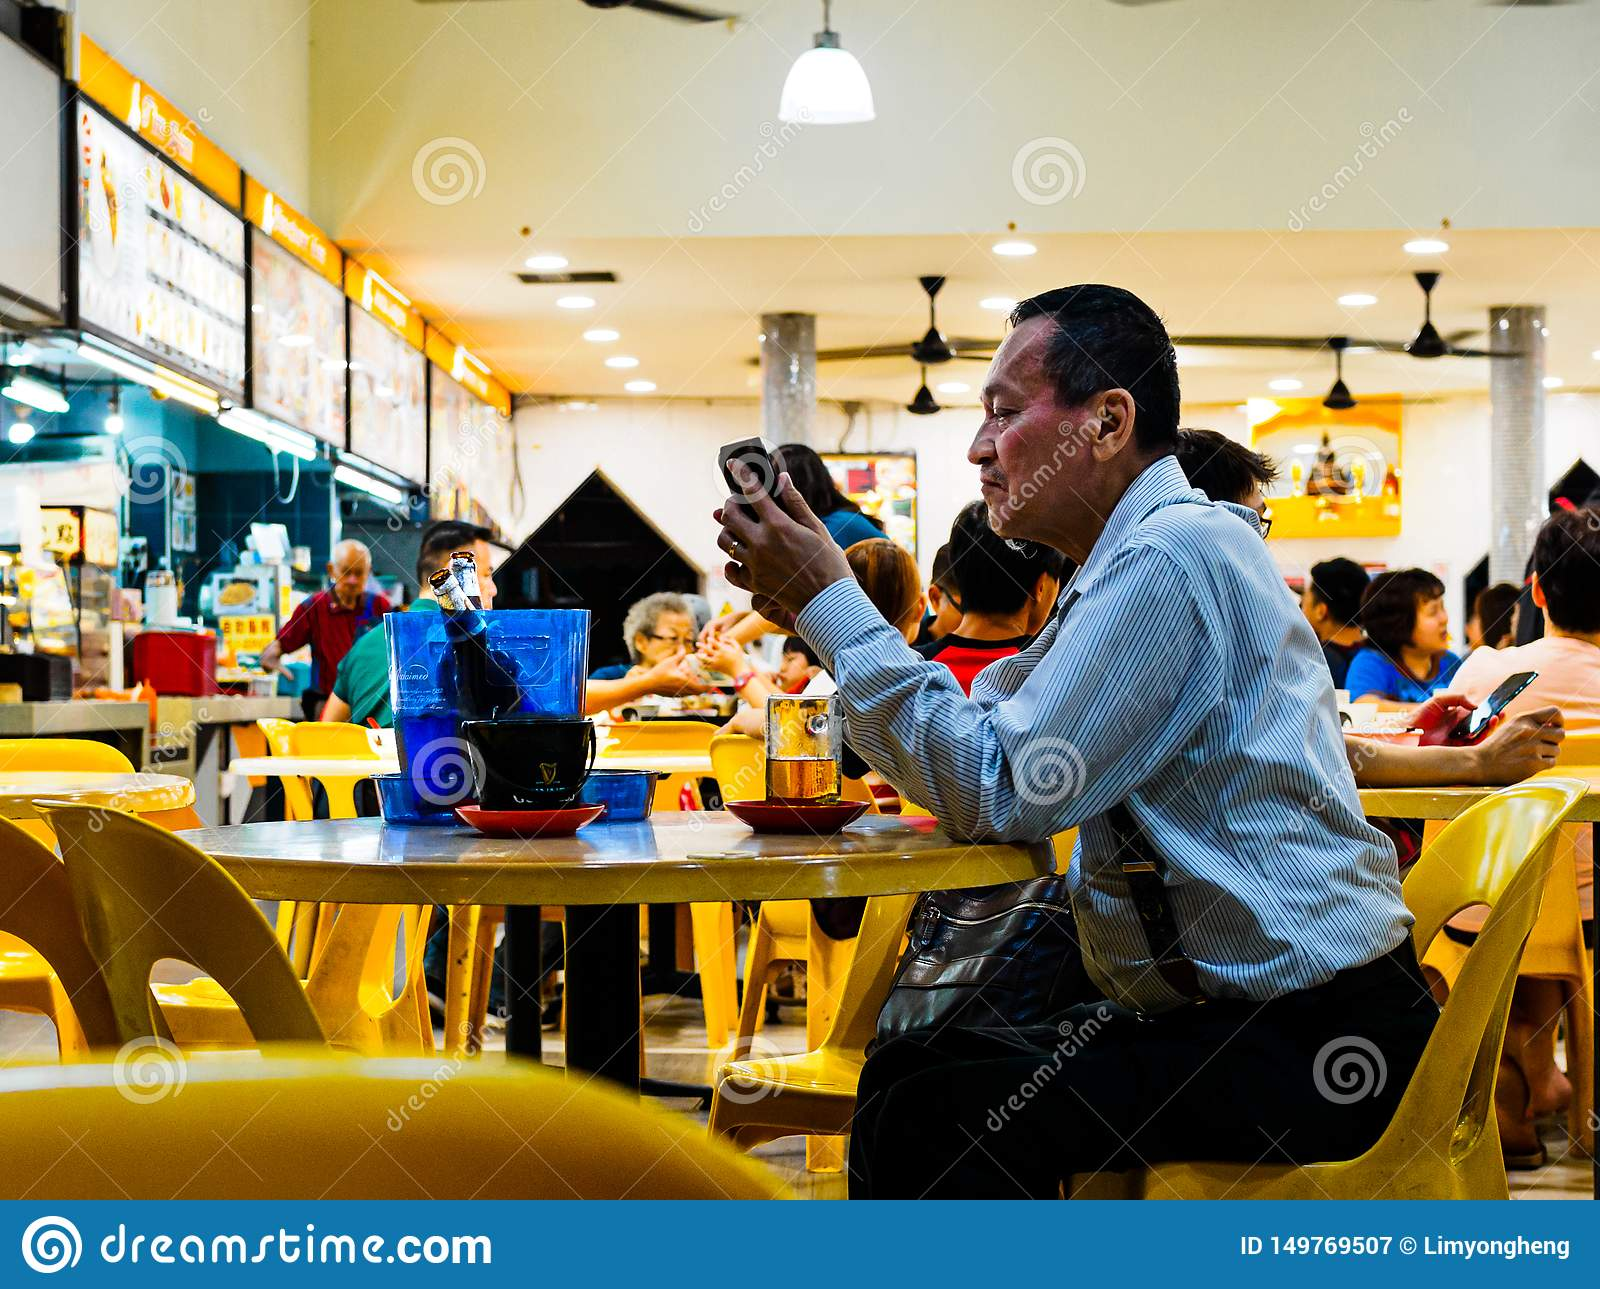 SINGAPORE - 17 MAR 2019 - A middle aged man in office atire enjoys a late night beer at an eatery / coffeeshop / kopitiam, /